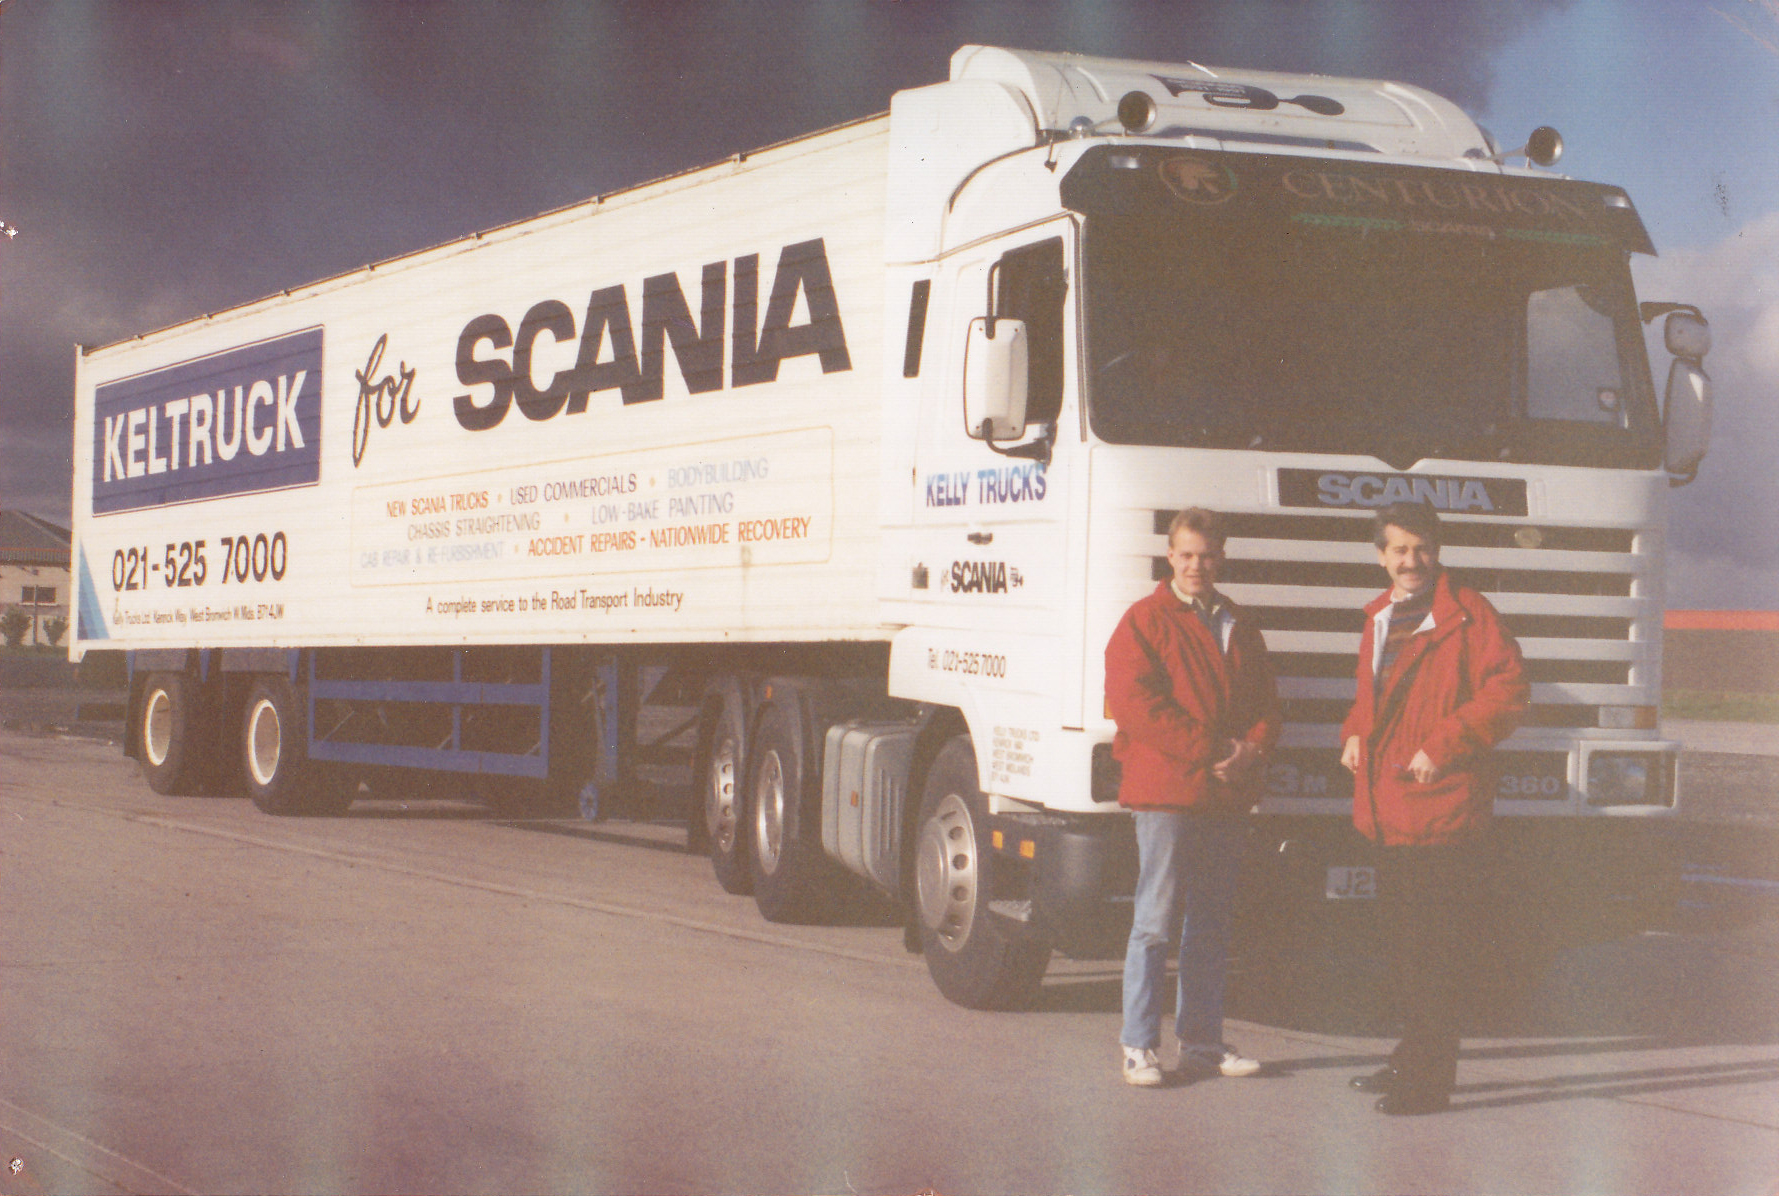 Chris Kelly & David Morgan begin another aid mission to eastern Europe in Keltruck's Scania R113 Streamline demonstrator.